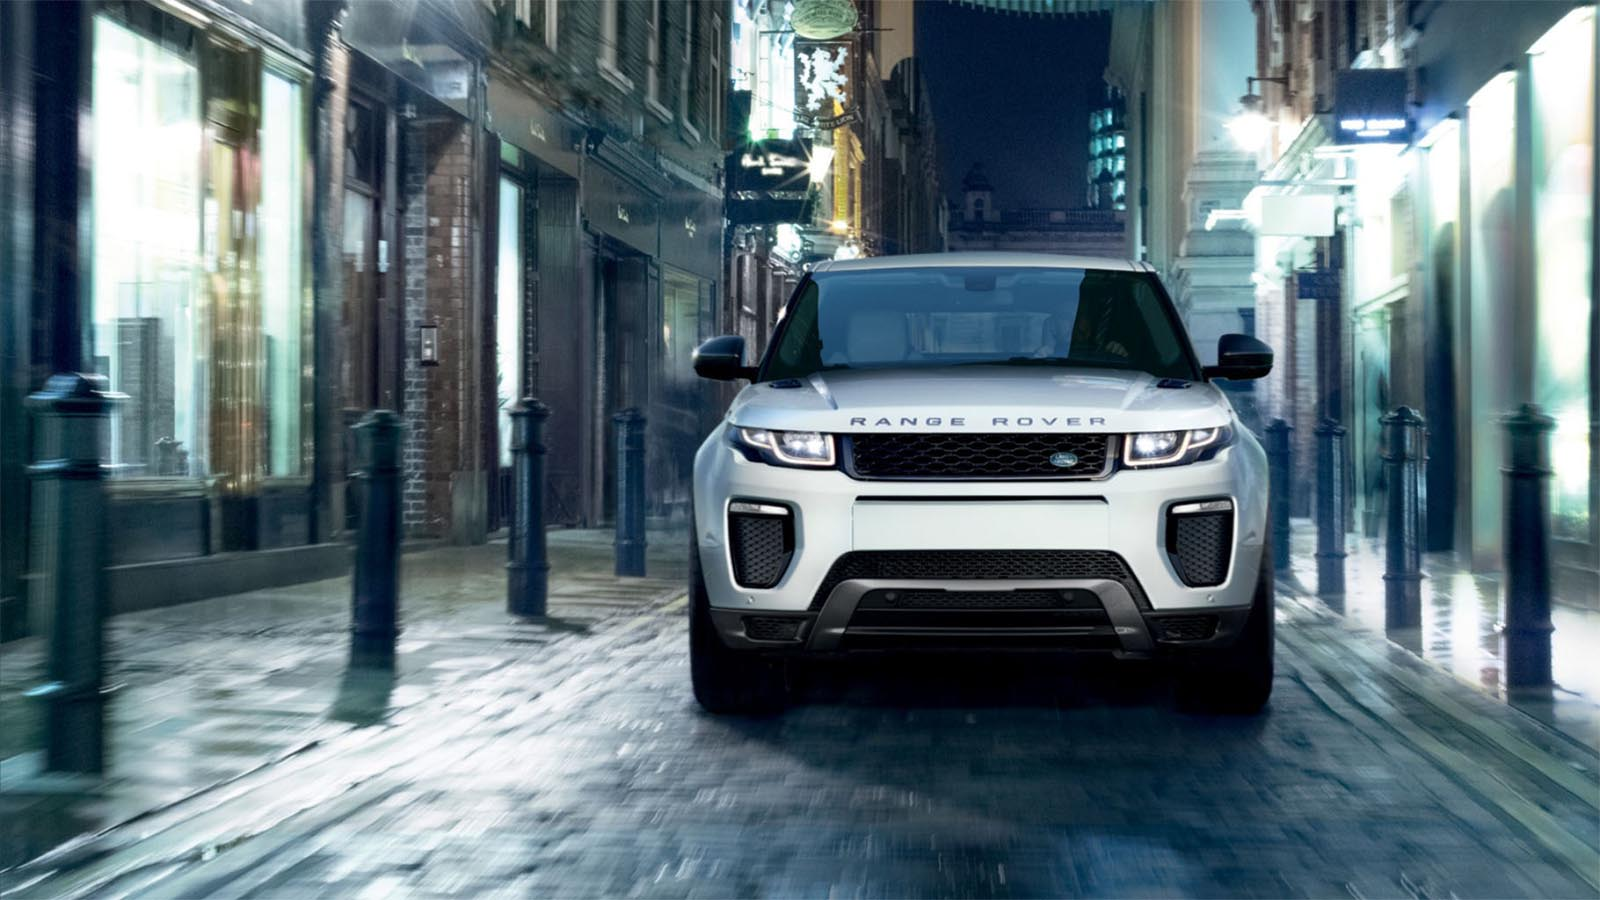 Range Rover Evoque driving in a narrow street. 19MY Shown.